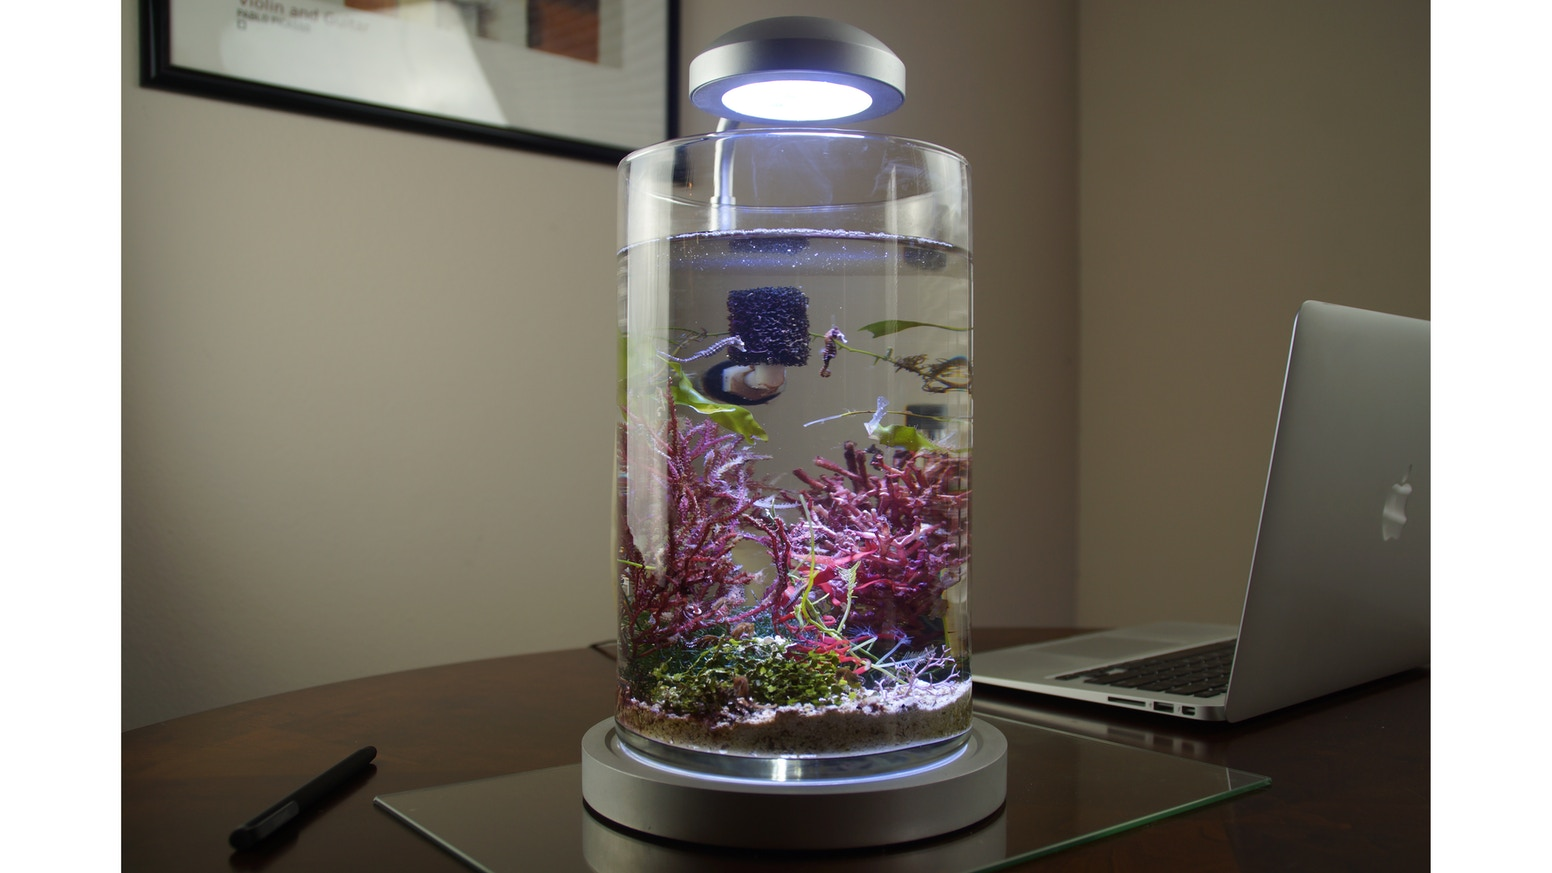 PJ reefs 2.0 is the aquarium that gives the adventurous aquarium hobbyist the ability to own a dwarf seahorse because it introduces new gadgets for their care.